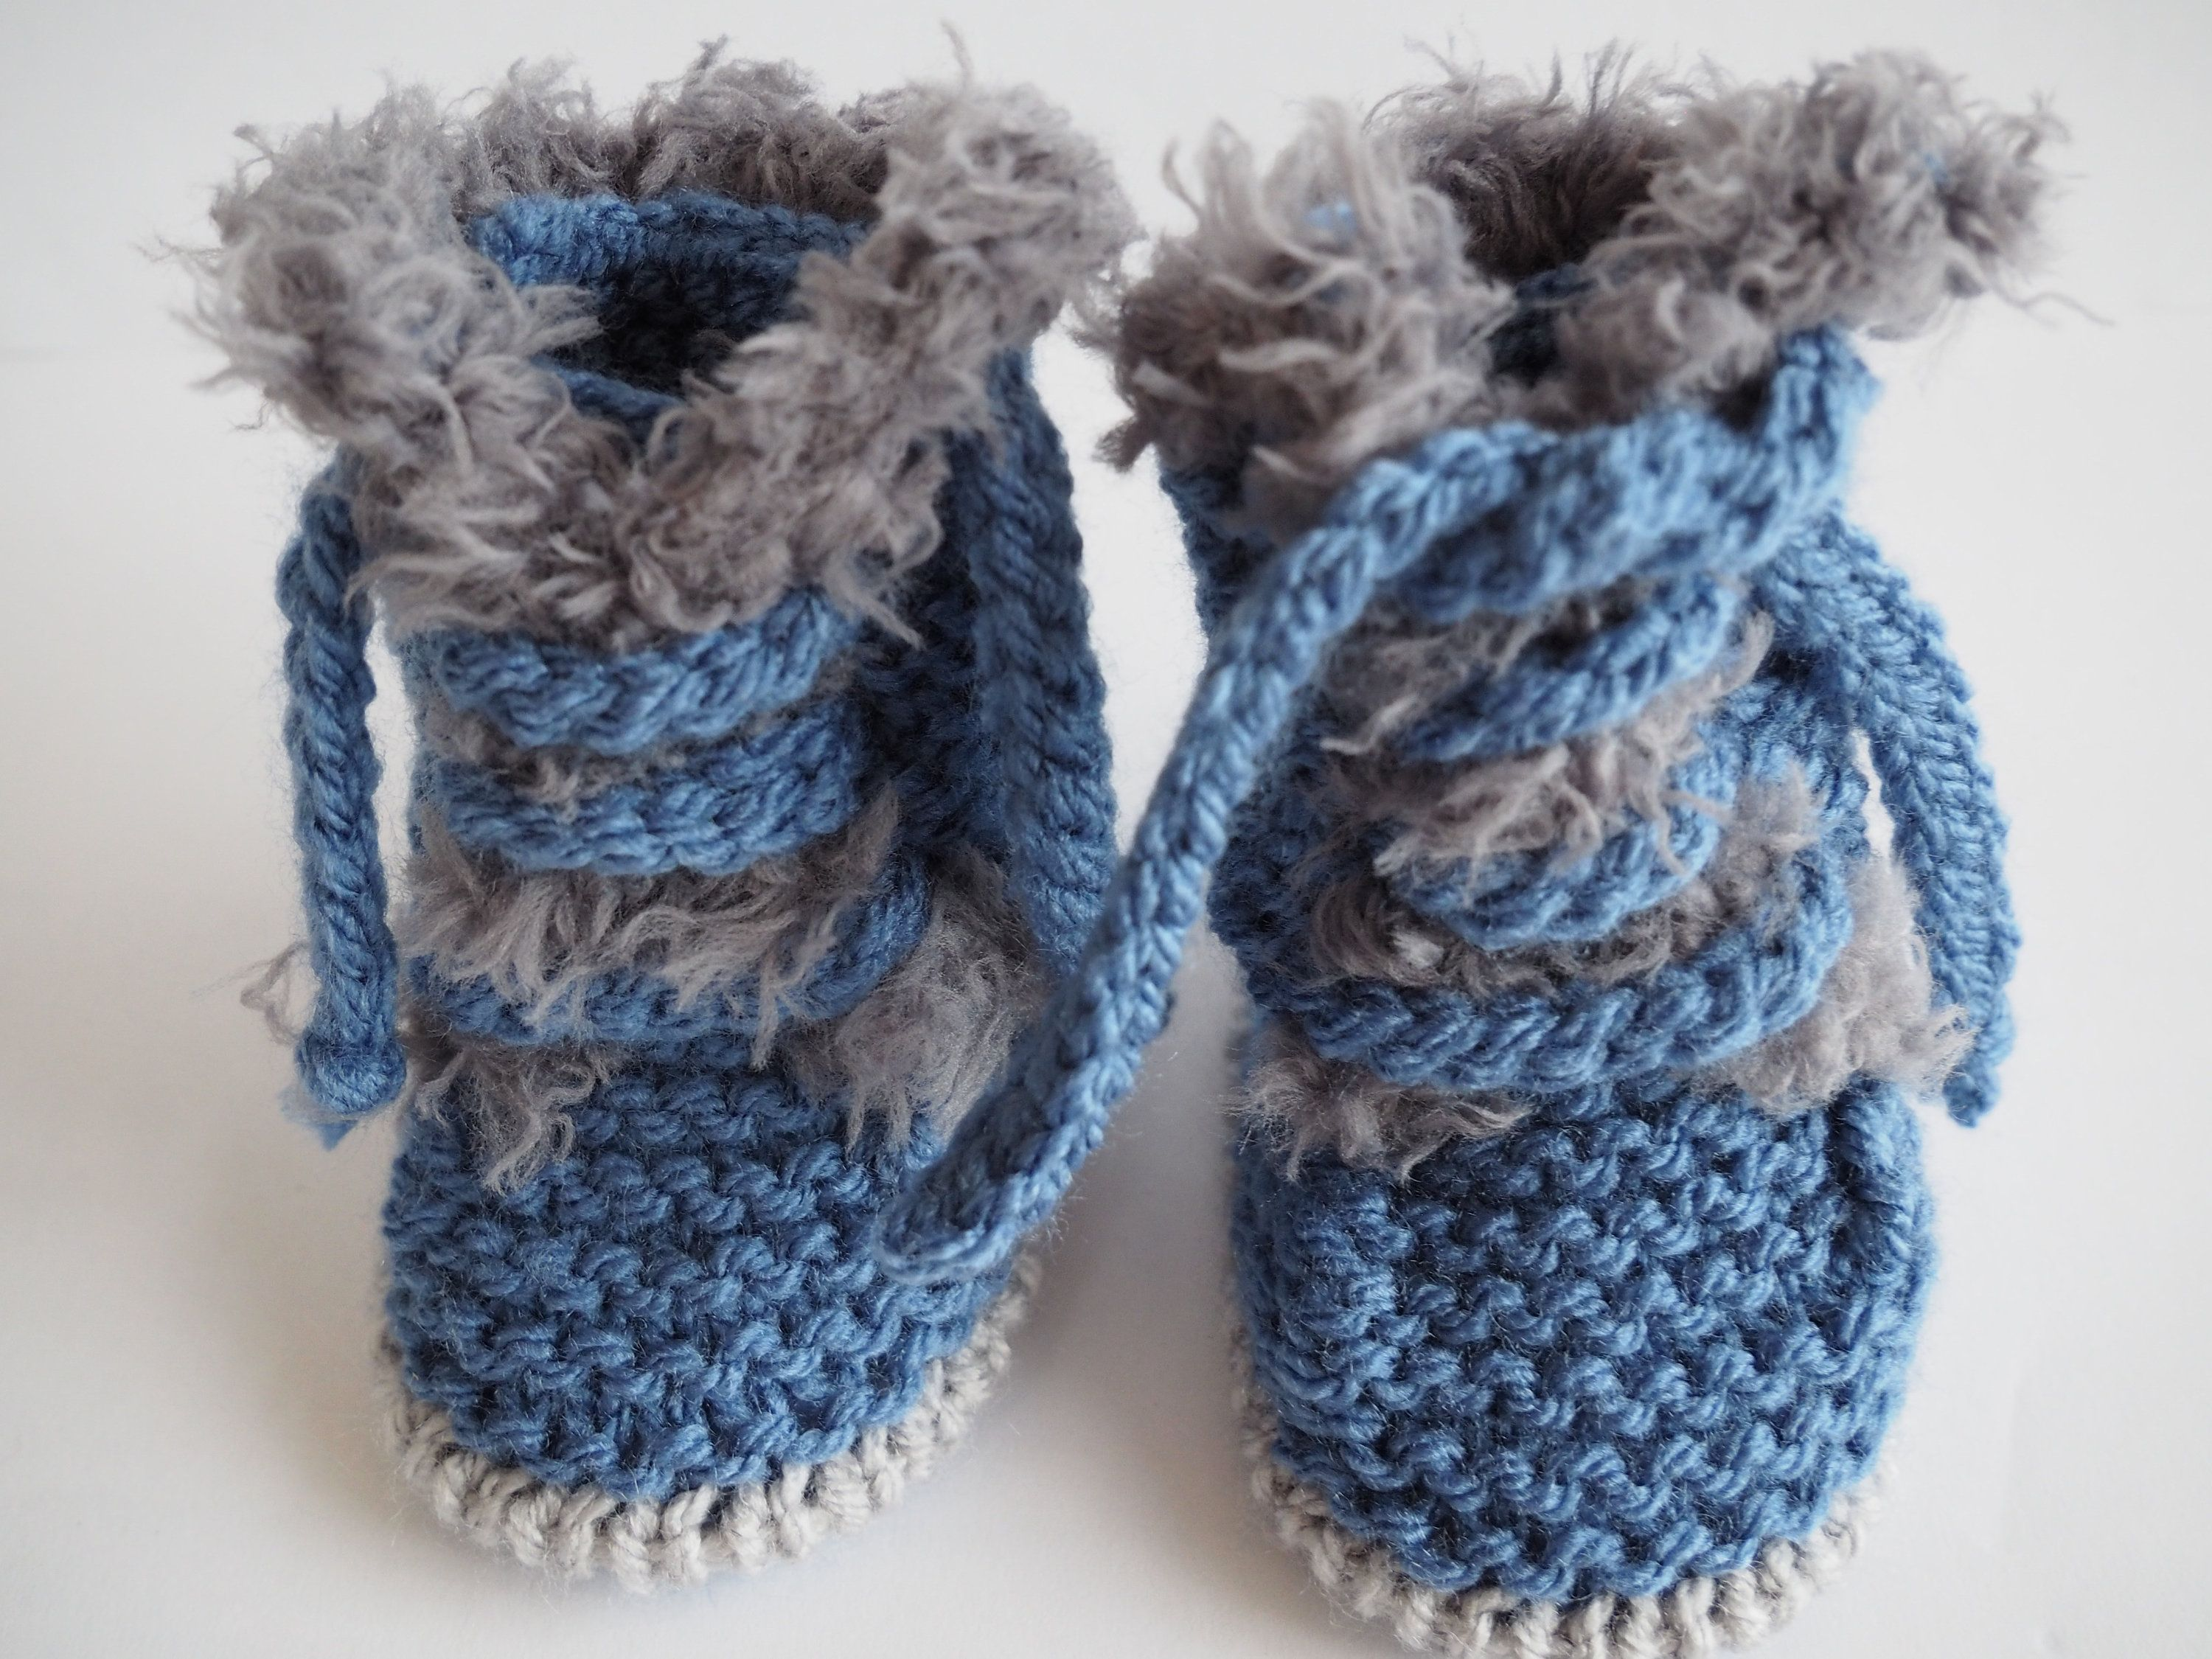 HAND  CROCHET KNIT SHOES SOCKS TRINERS SNEAKERS BOOTIES AND HAT WOOL